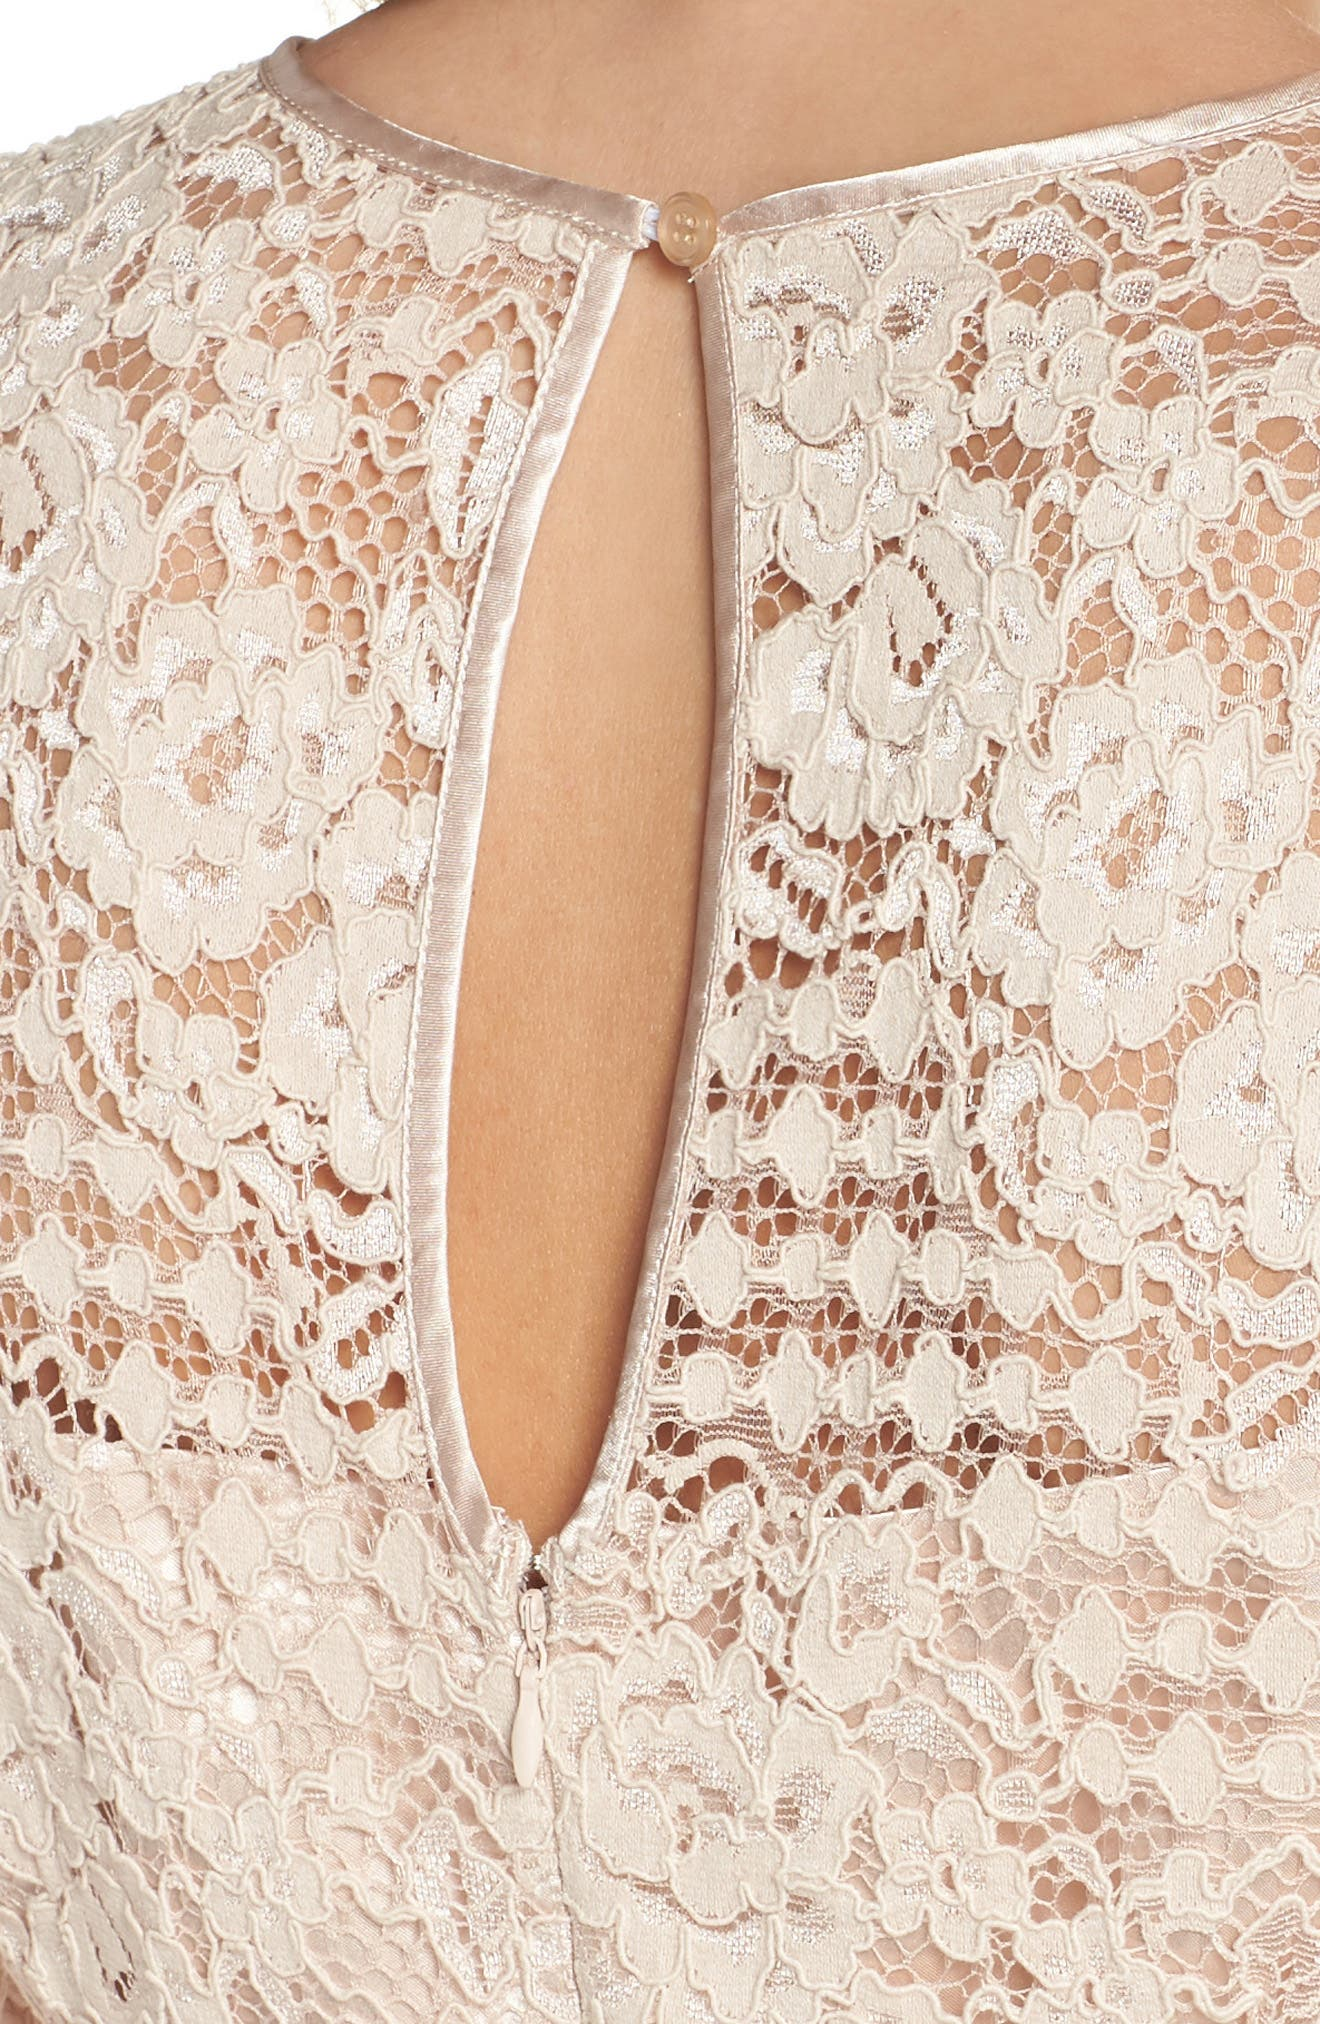 Ruched Sleeve Lace Dress,                             Alternate thumbnail 4, color,                             PINK BLUSH